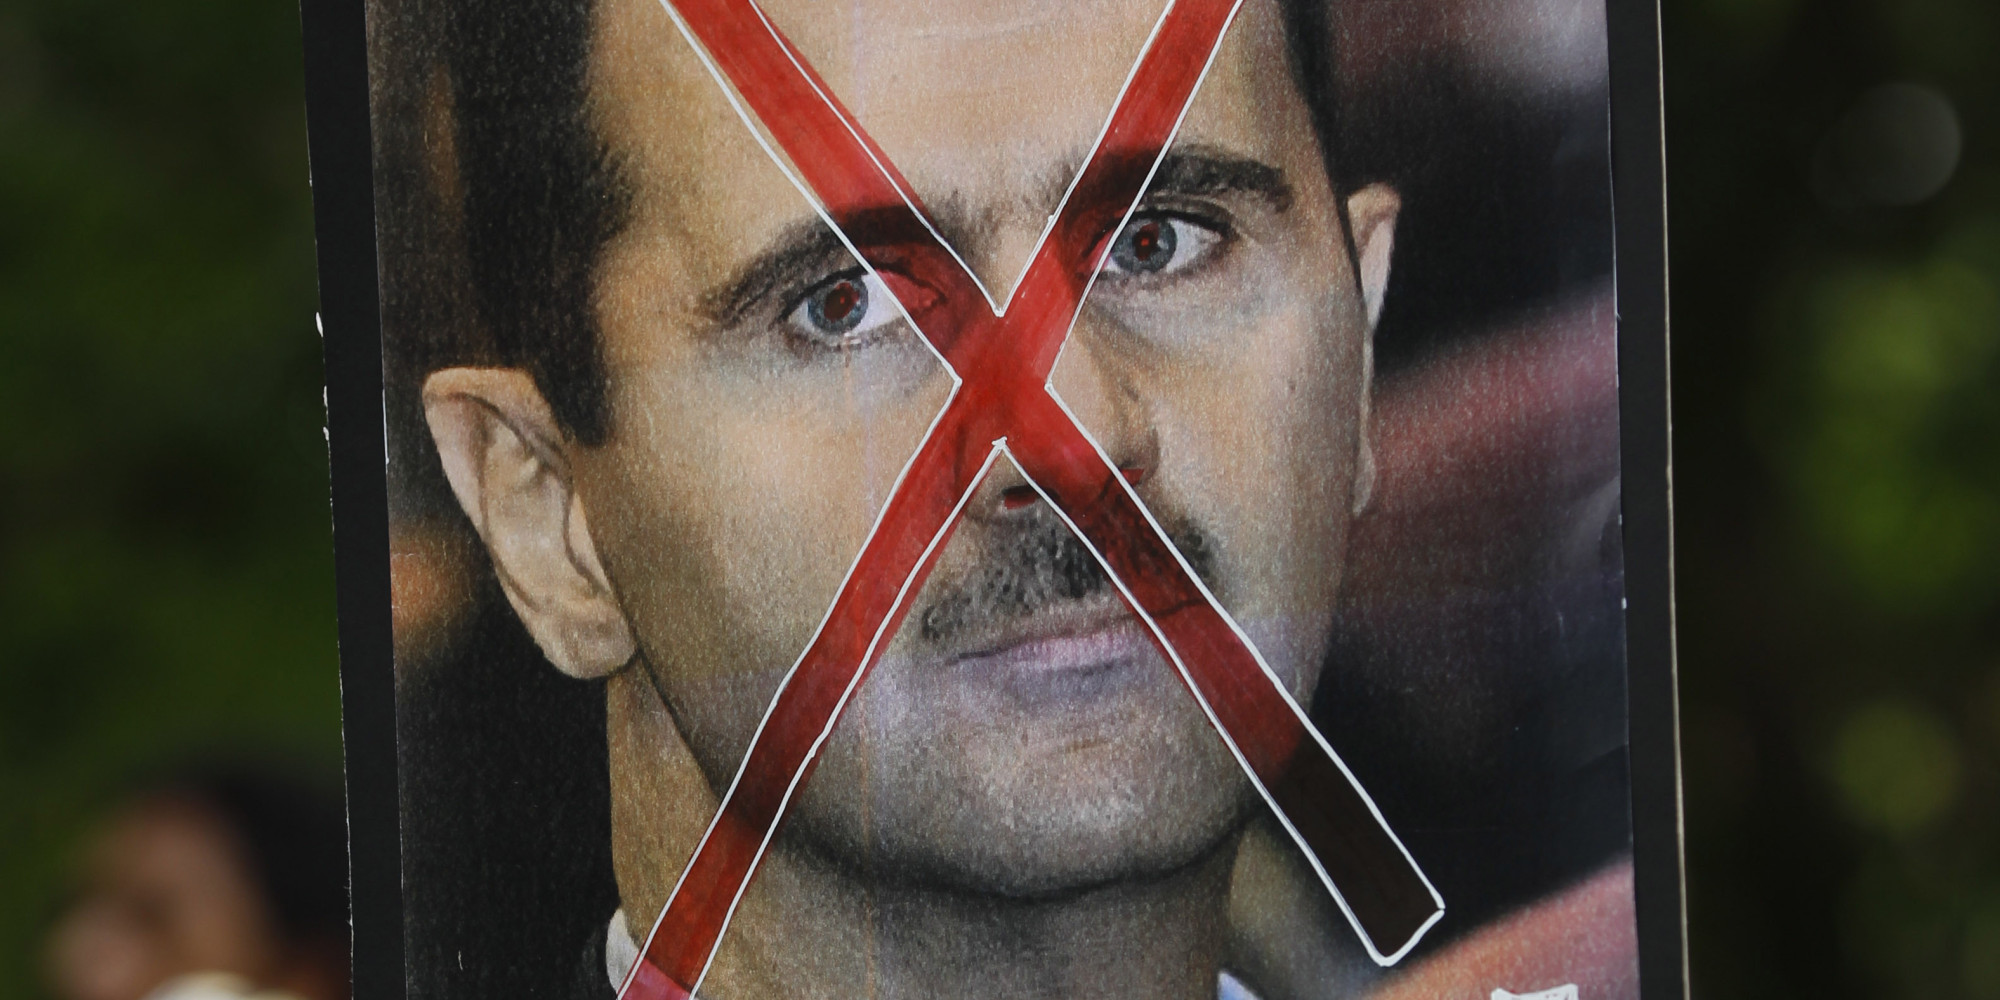 the civil war against bashar assads regime in syria